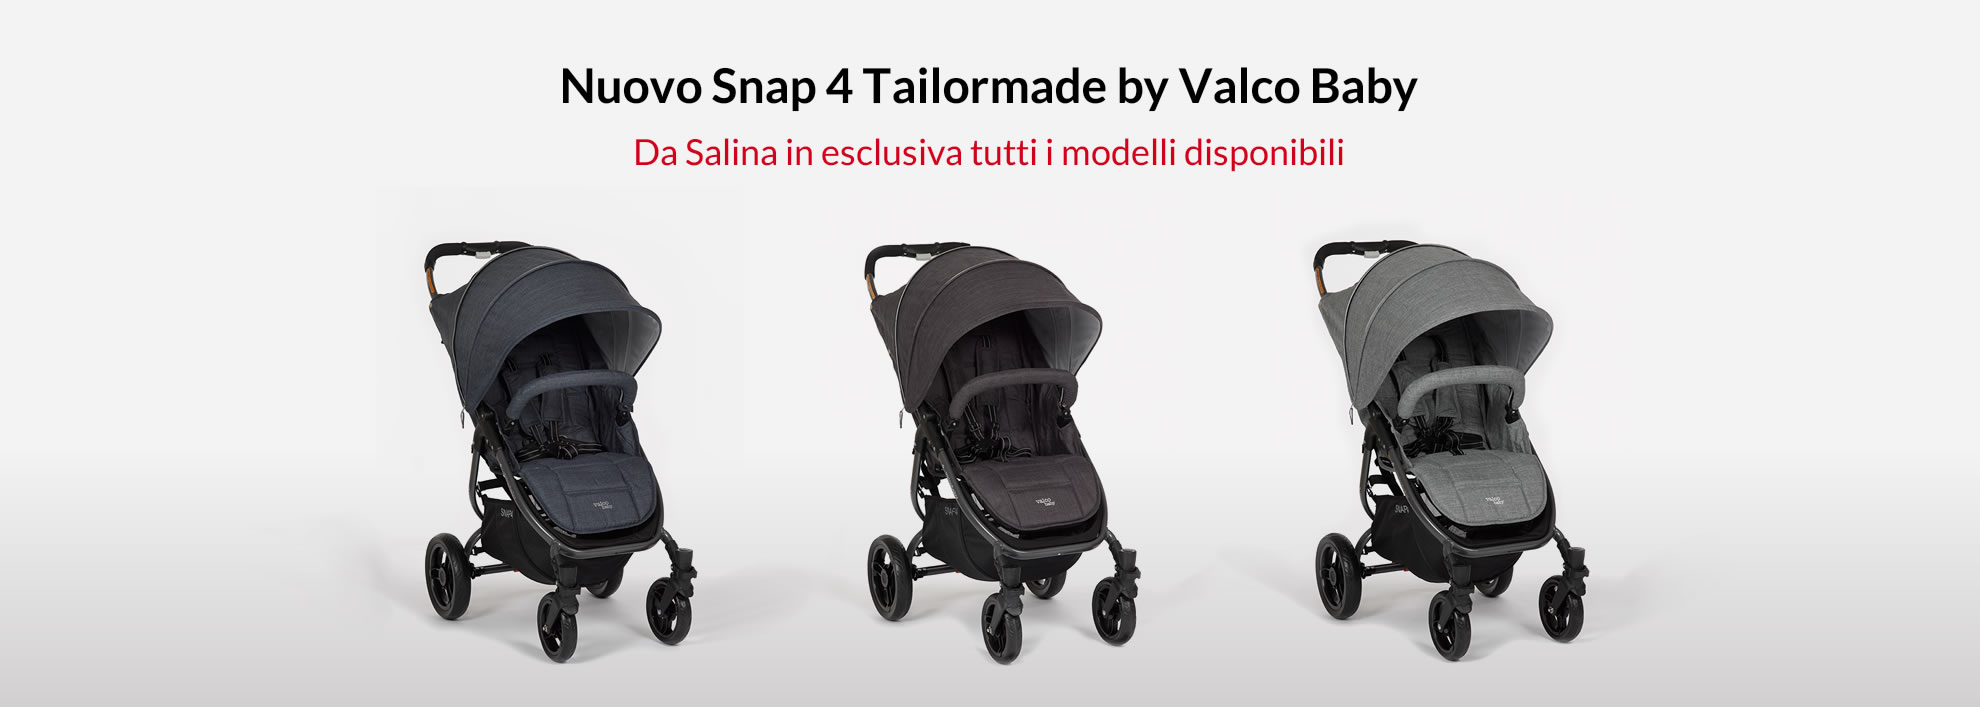 Snap 4 Tailormade by Valco Baby